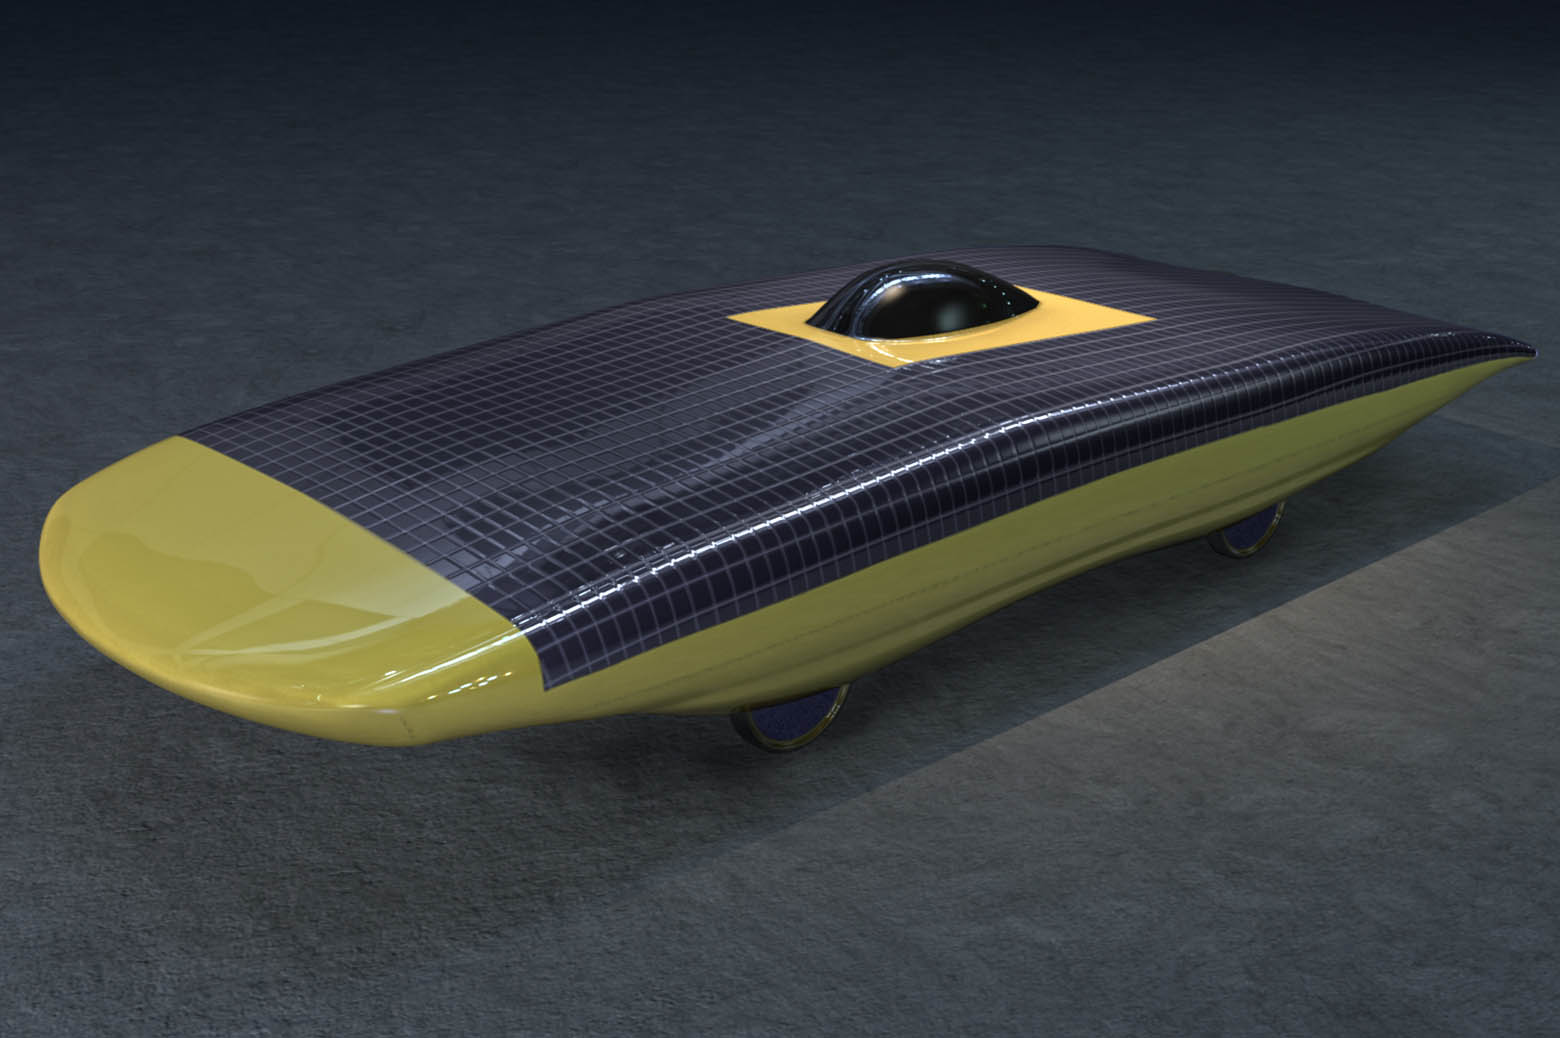 Illustration of solar car, Maize Blaze.